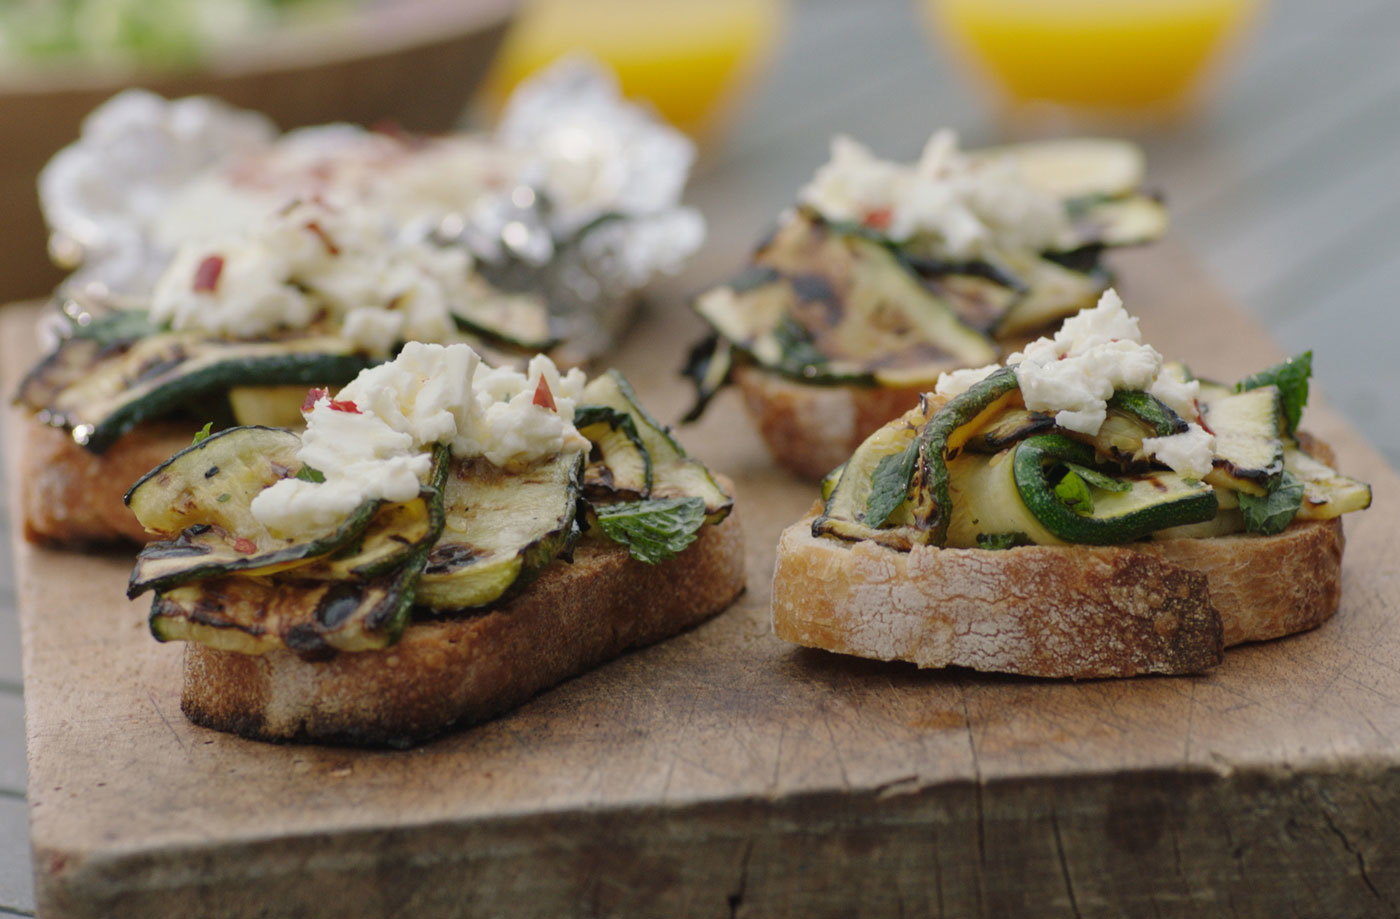 Courgette and feta bruschetta